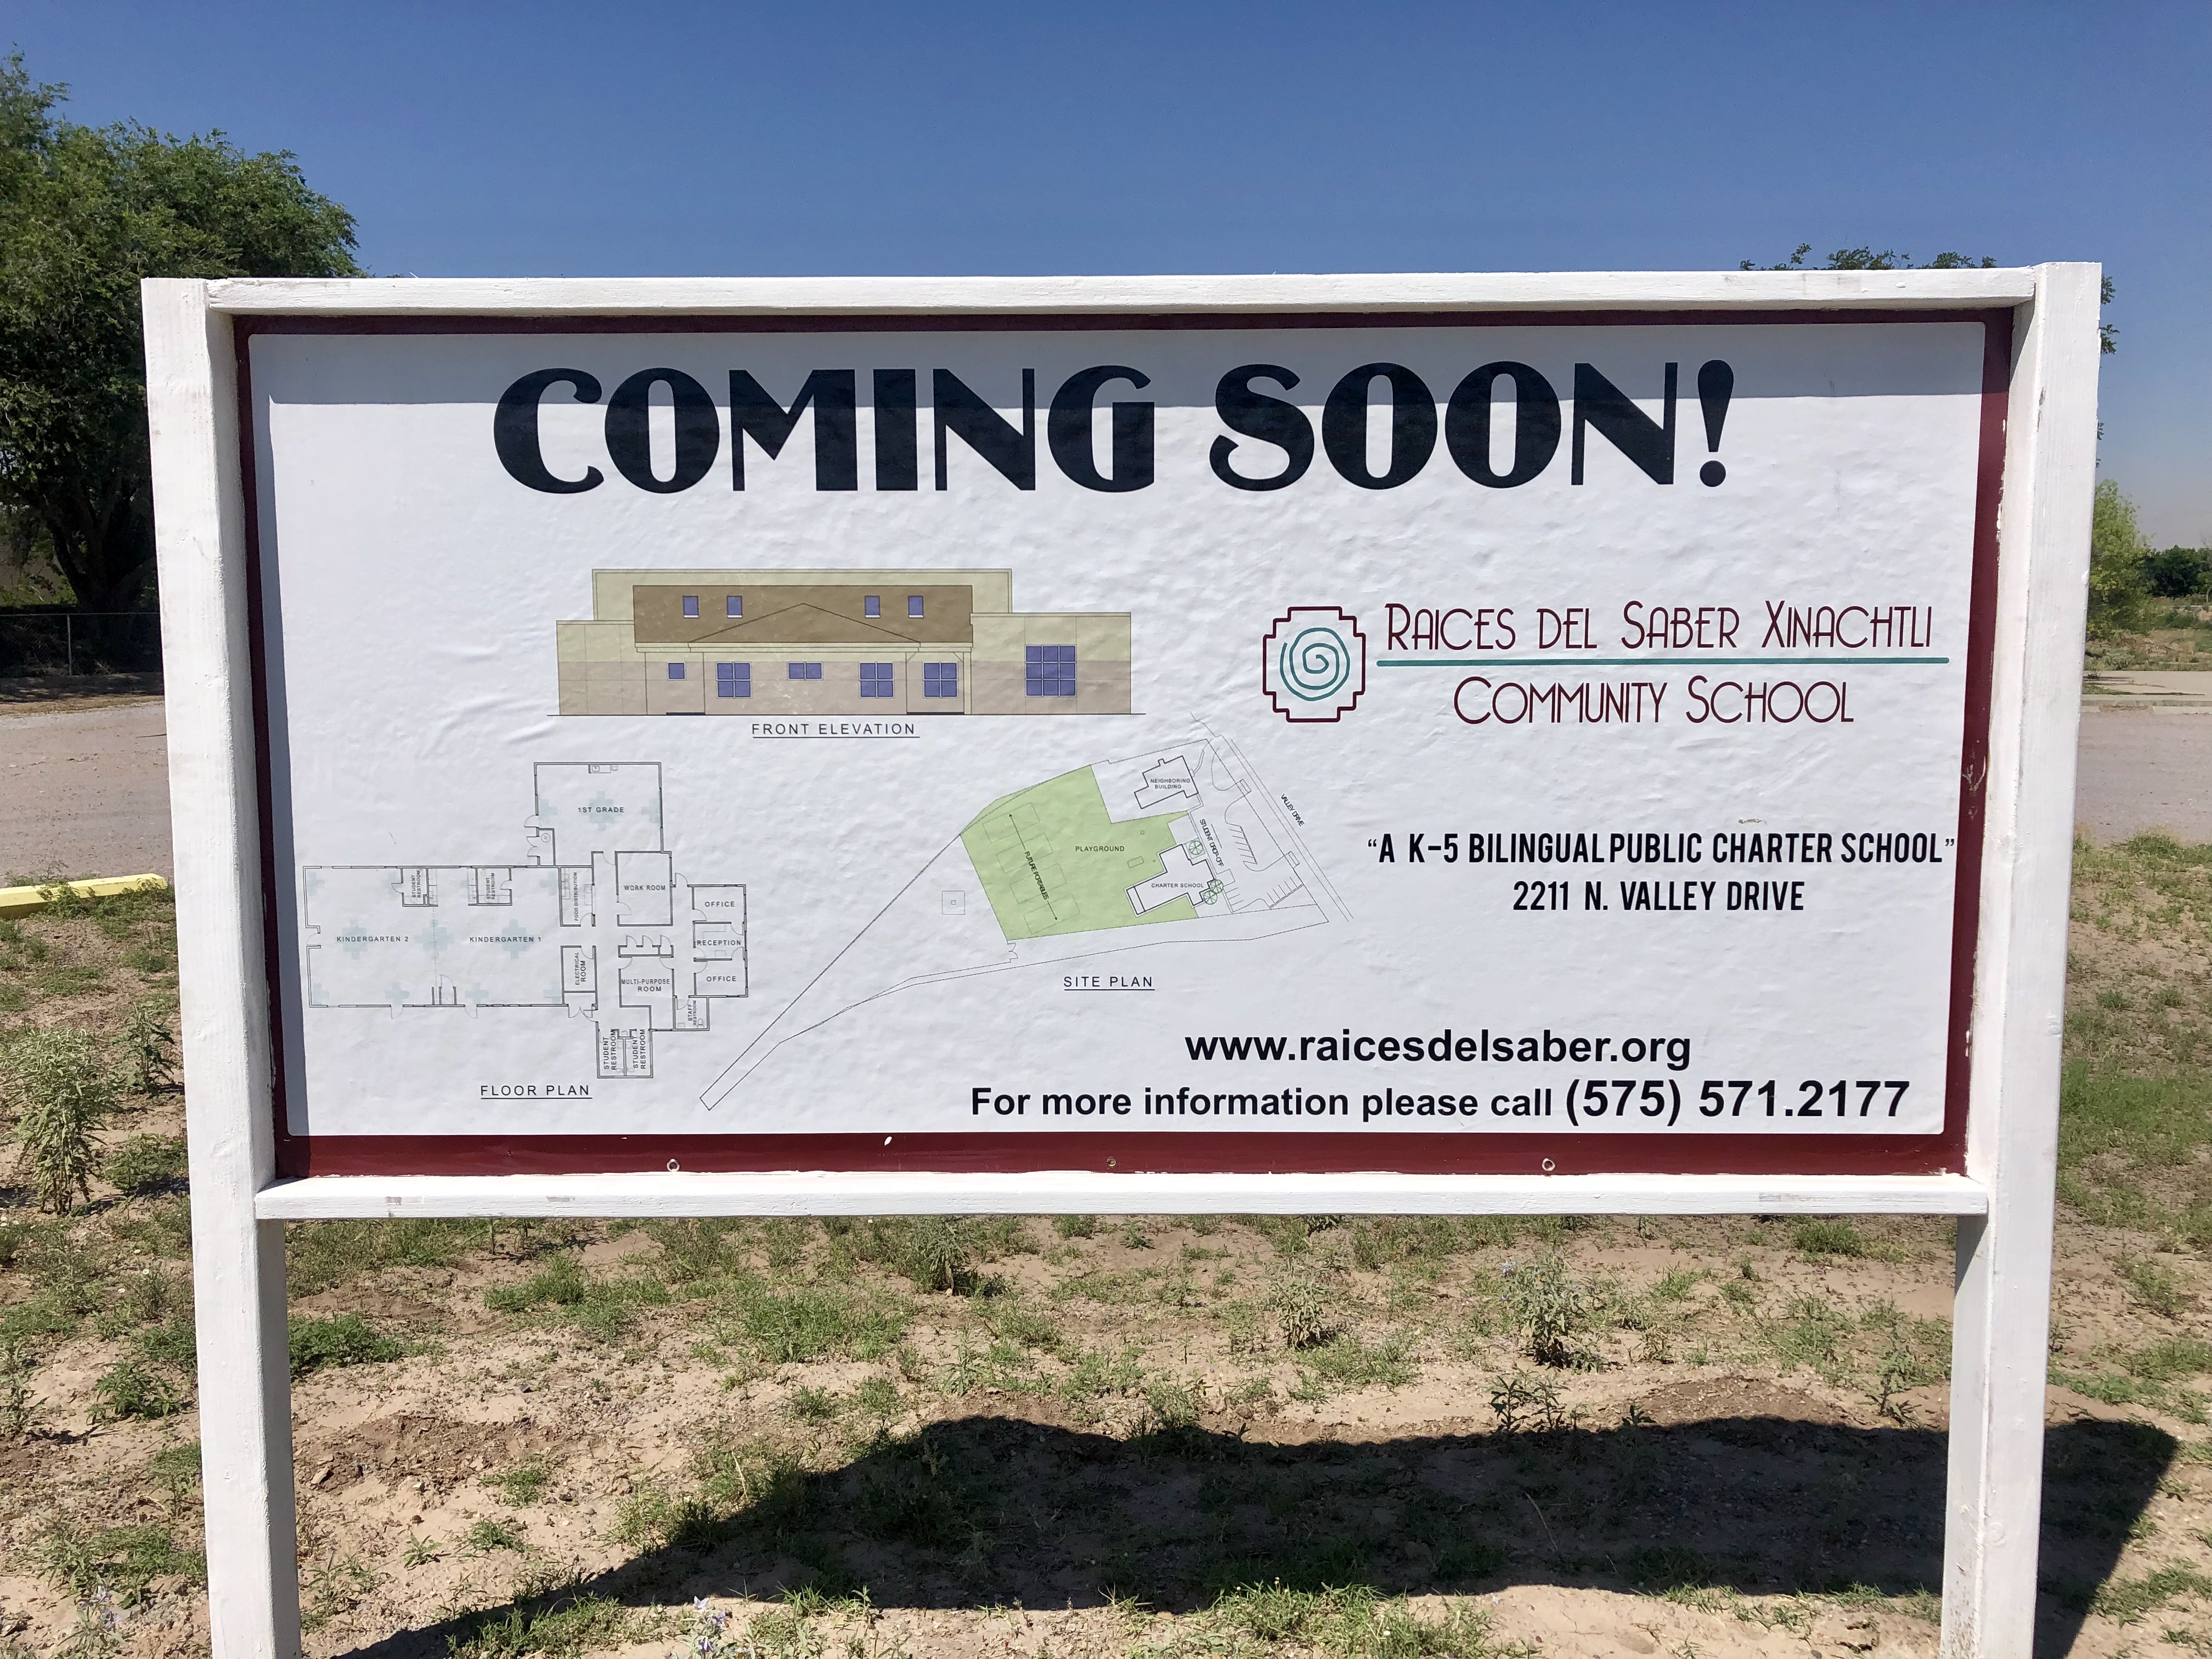 New Dual Language Charter School Set To Open In Las Cruces Pertaining To Las Cruces Ps Calendar